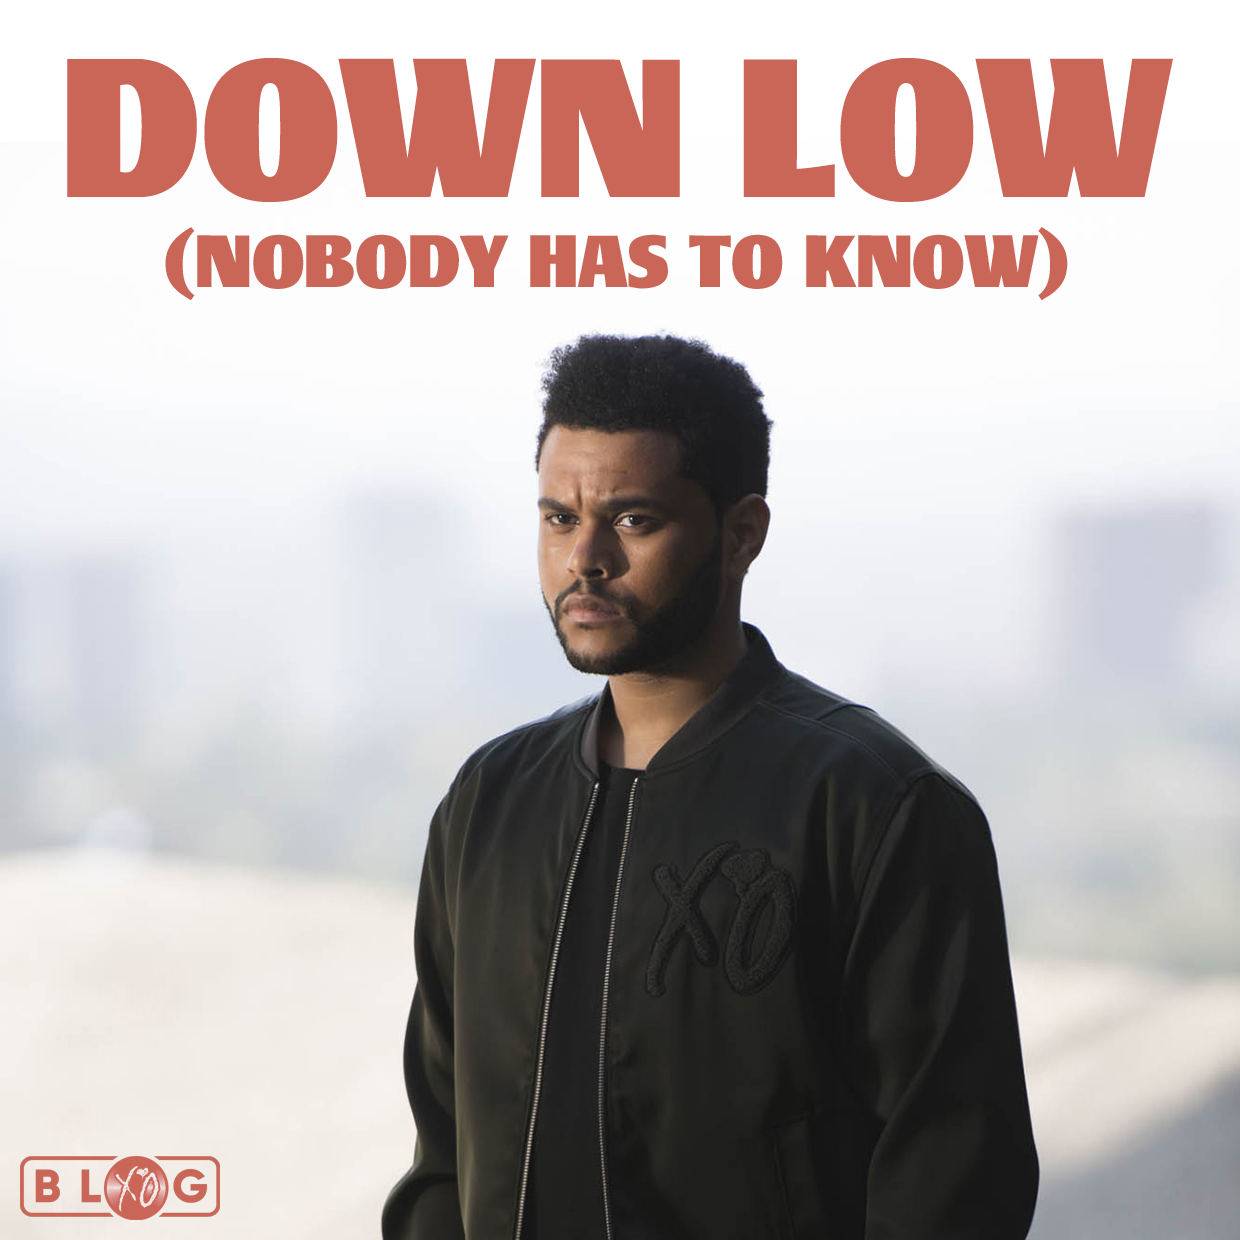 The Weeknd - Down Low (Nobody Has to Know) custom album artwork cover